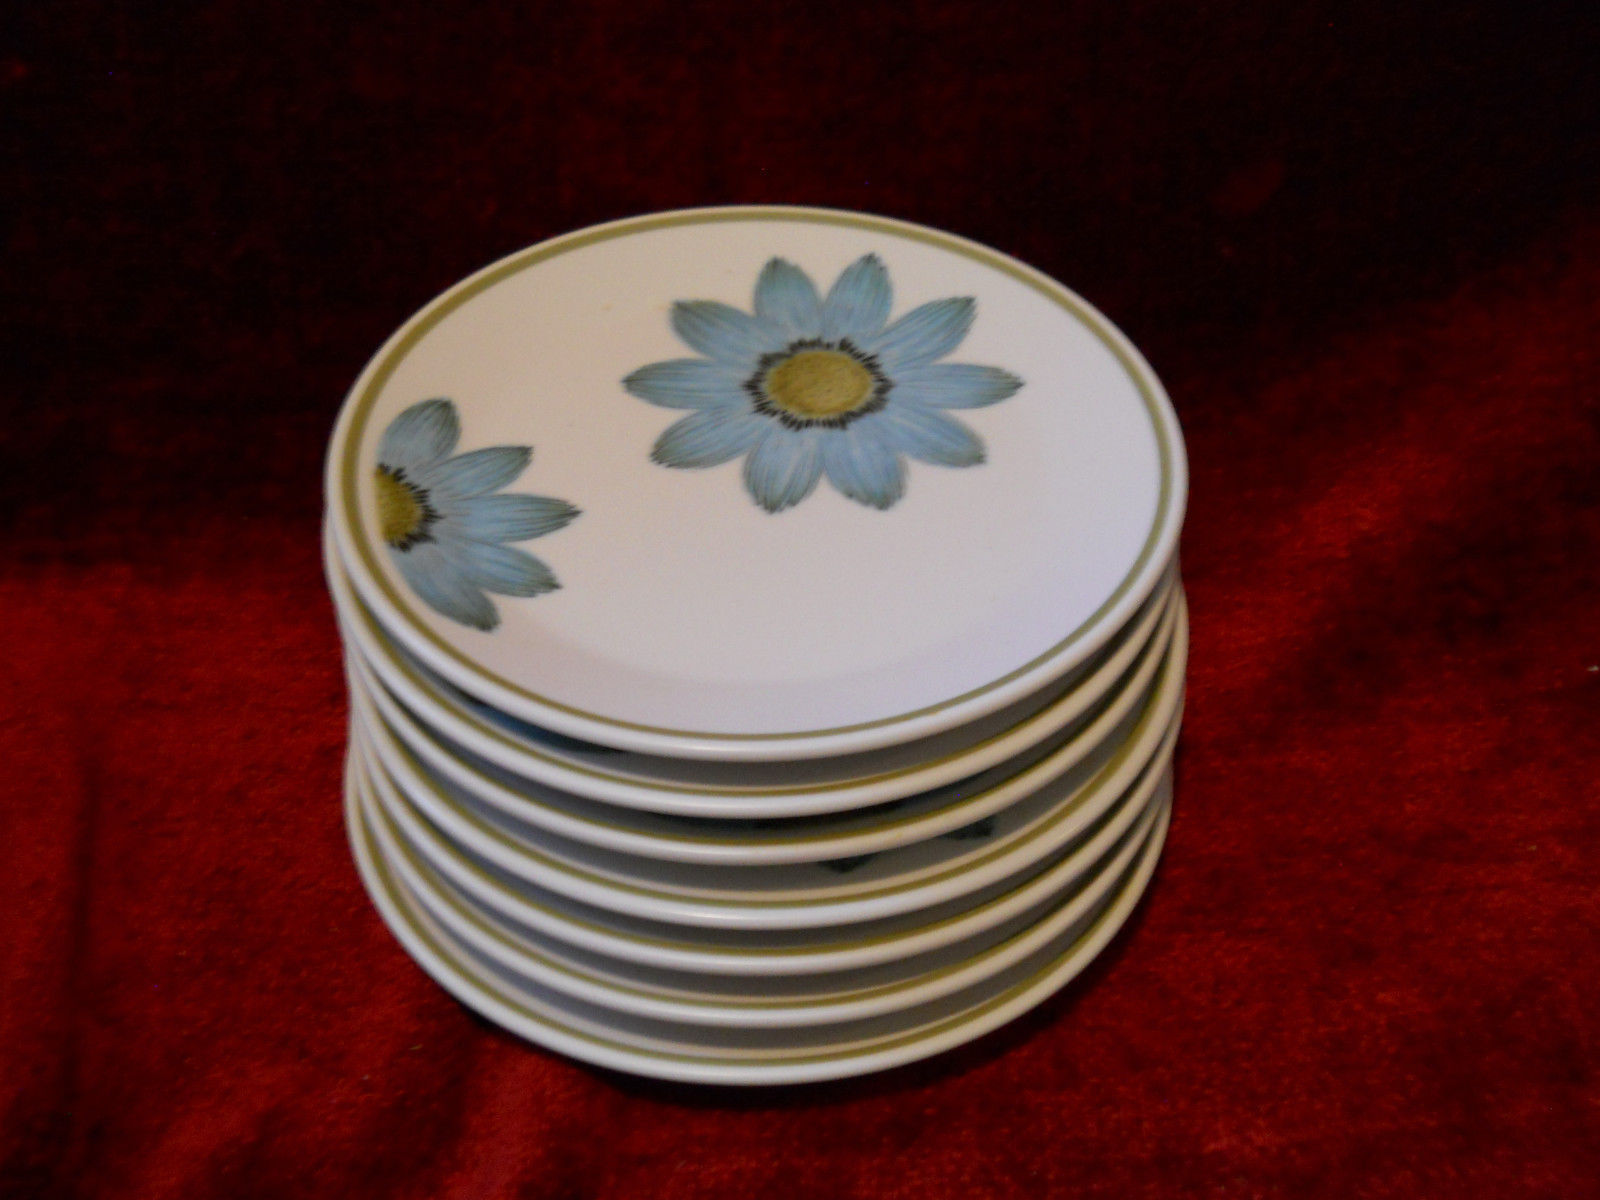 Primary image for Noritake Ups a daisy set of 7 bread plates